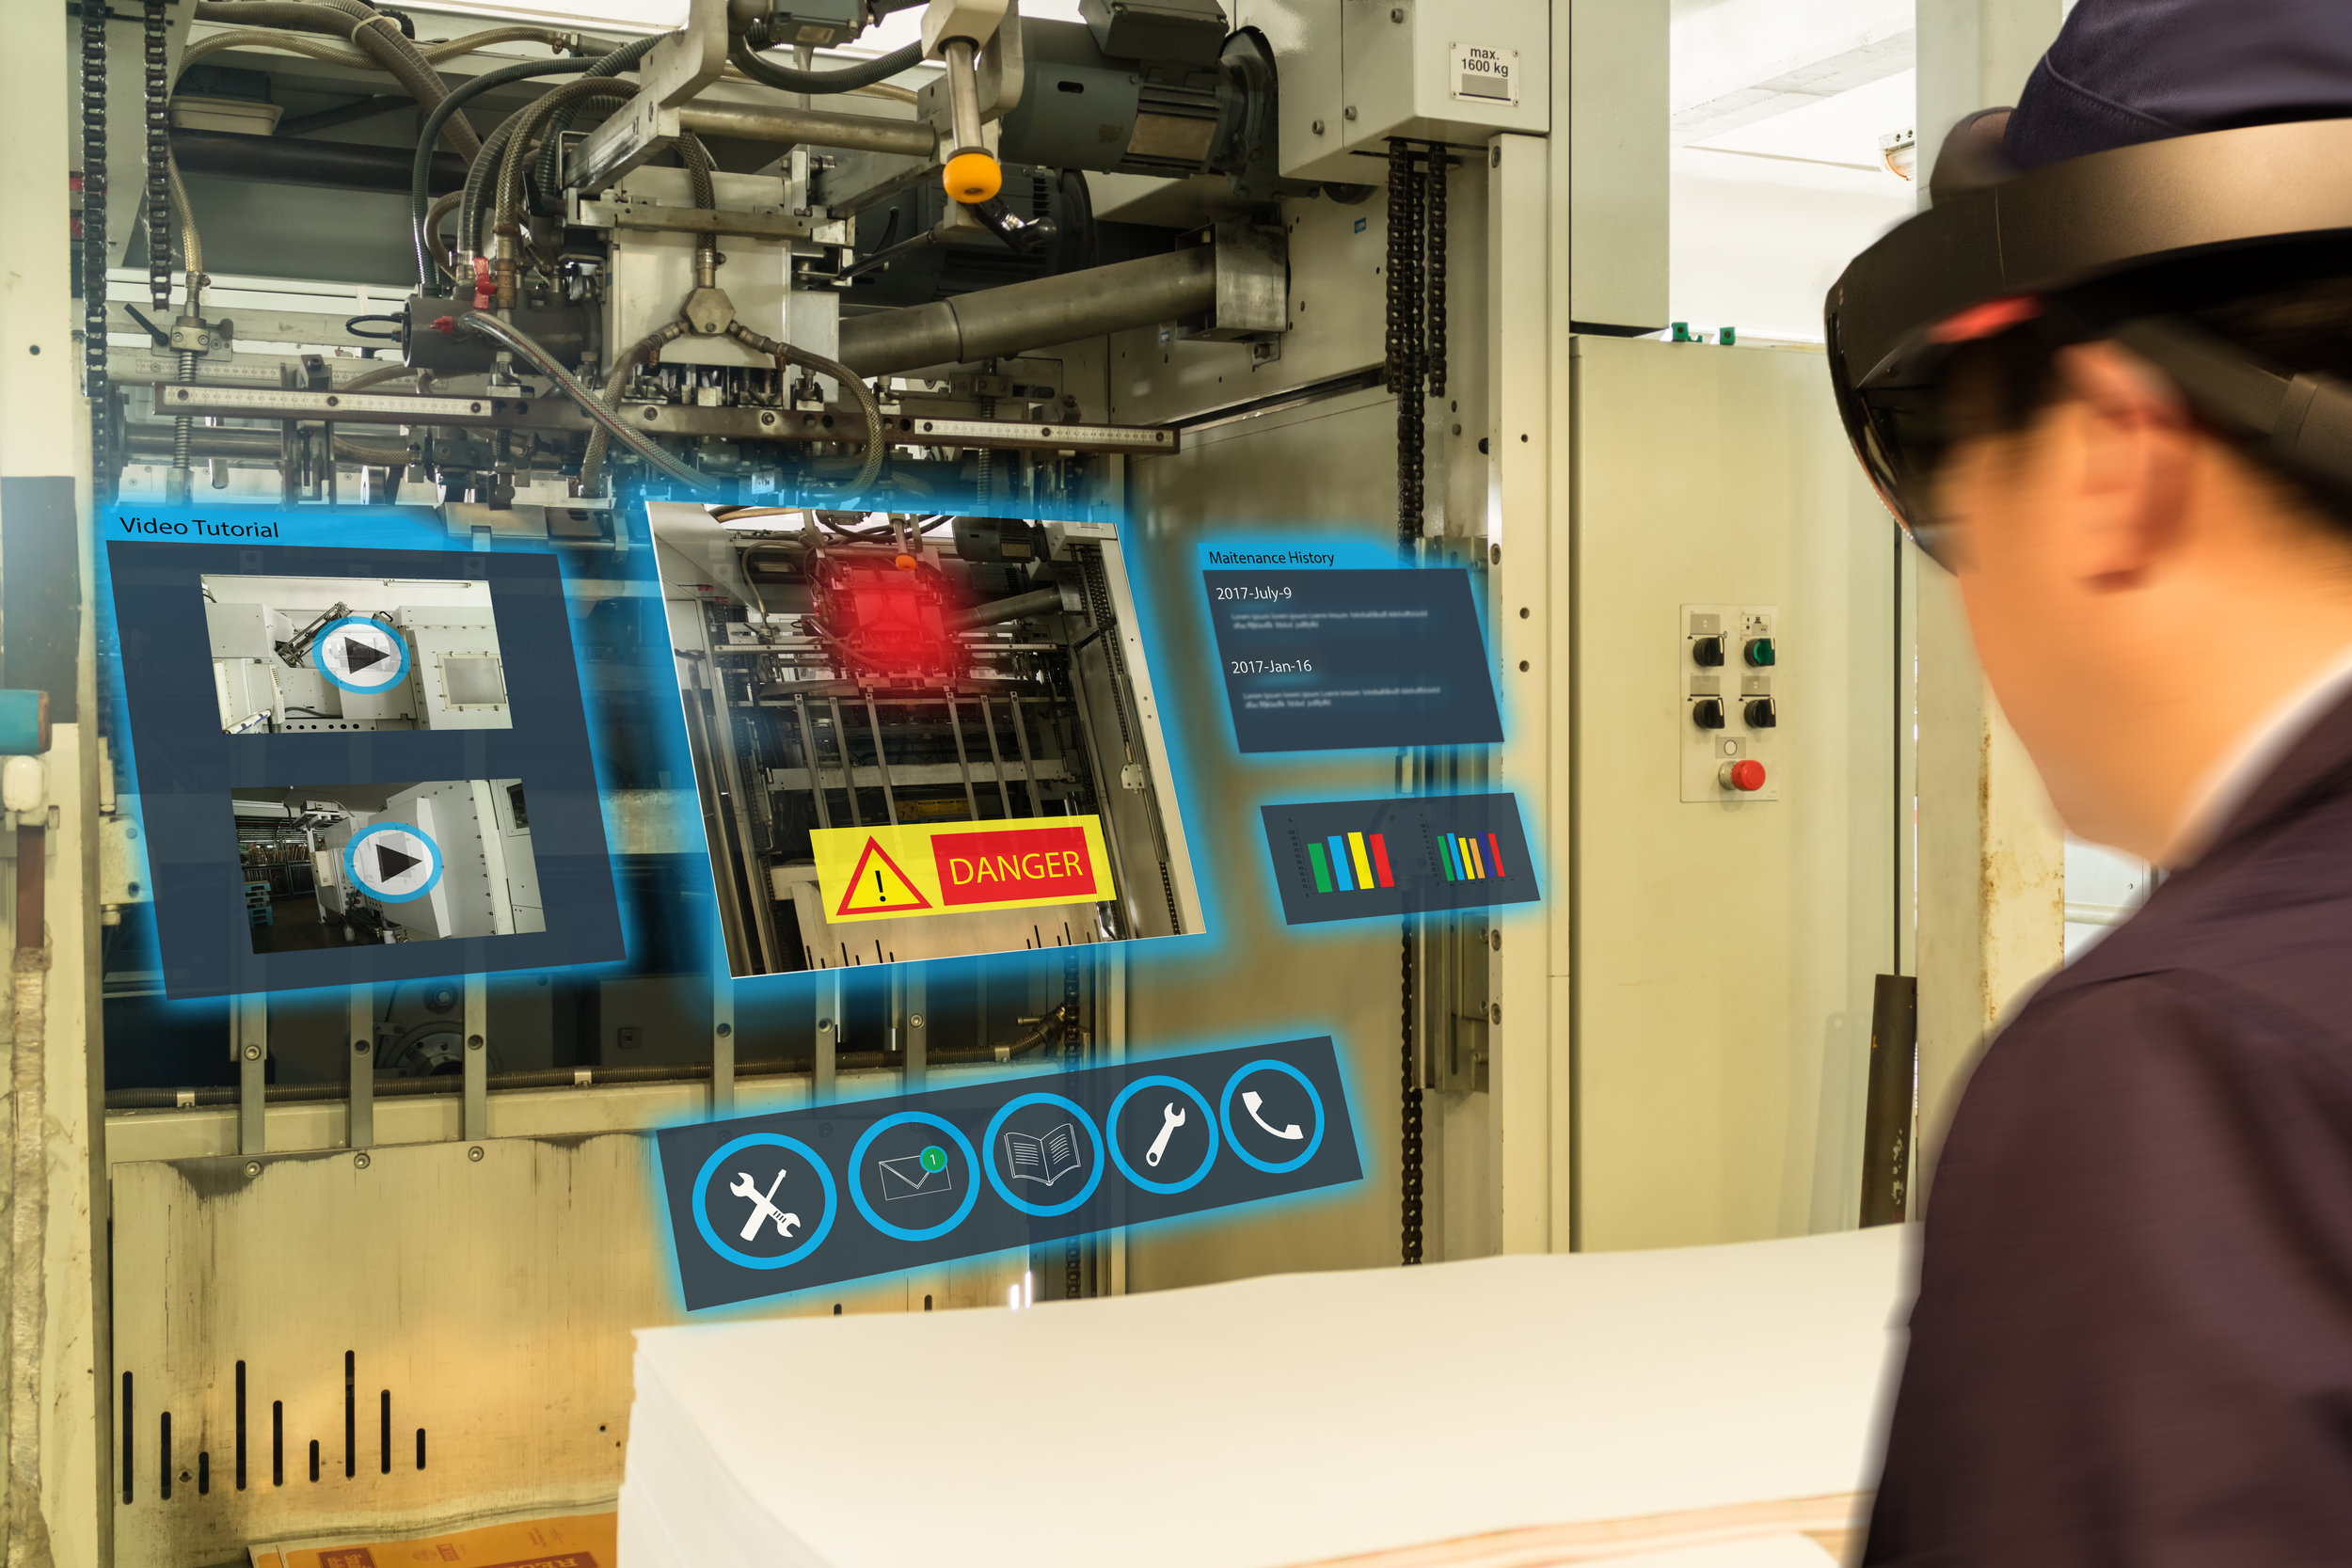 HoloLens can be used on the job to enable workers to carry out maintenance tasks whilst remaining hands-free. Other hands-free AR devices include RealWear and Google Glasses; these devices have limitations in terms of seeing the actual environment.